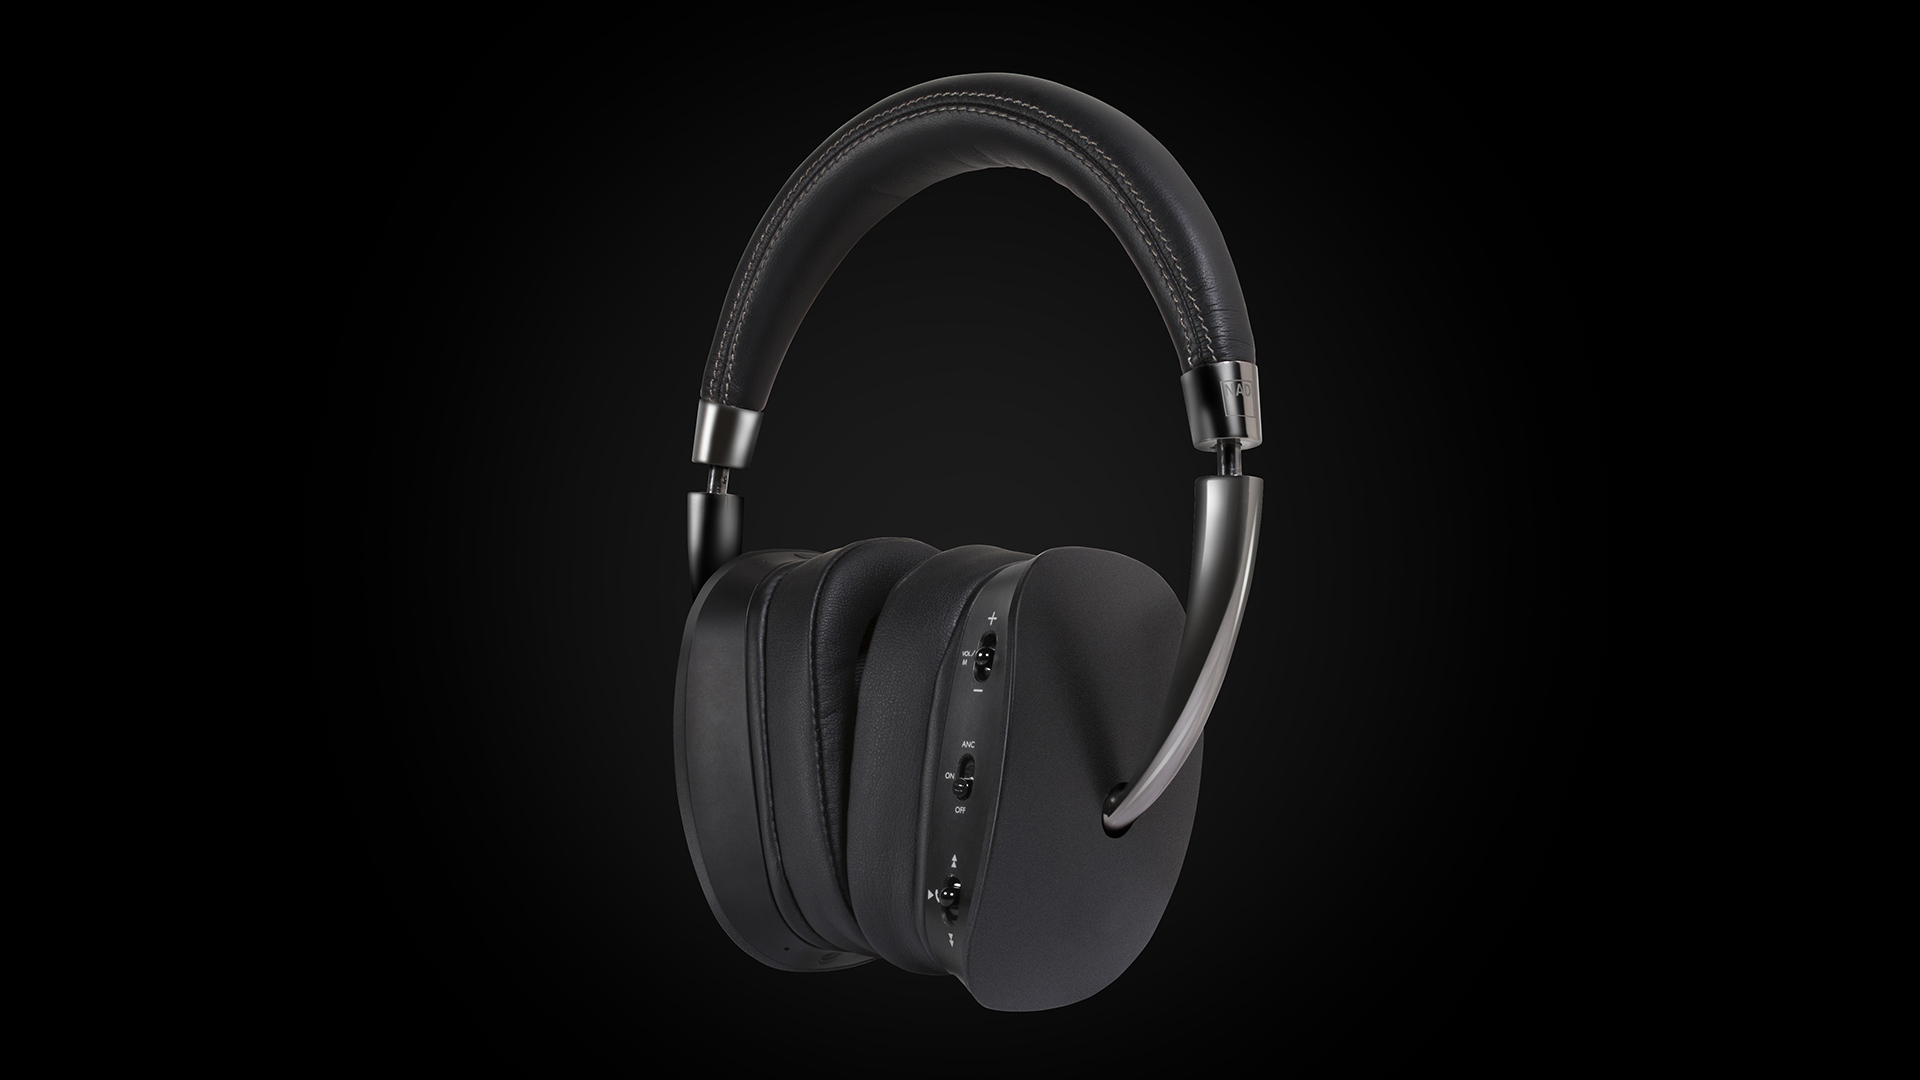 Home Theater Hifi Previews The Nad Hp70 Headphone Nad Electronics